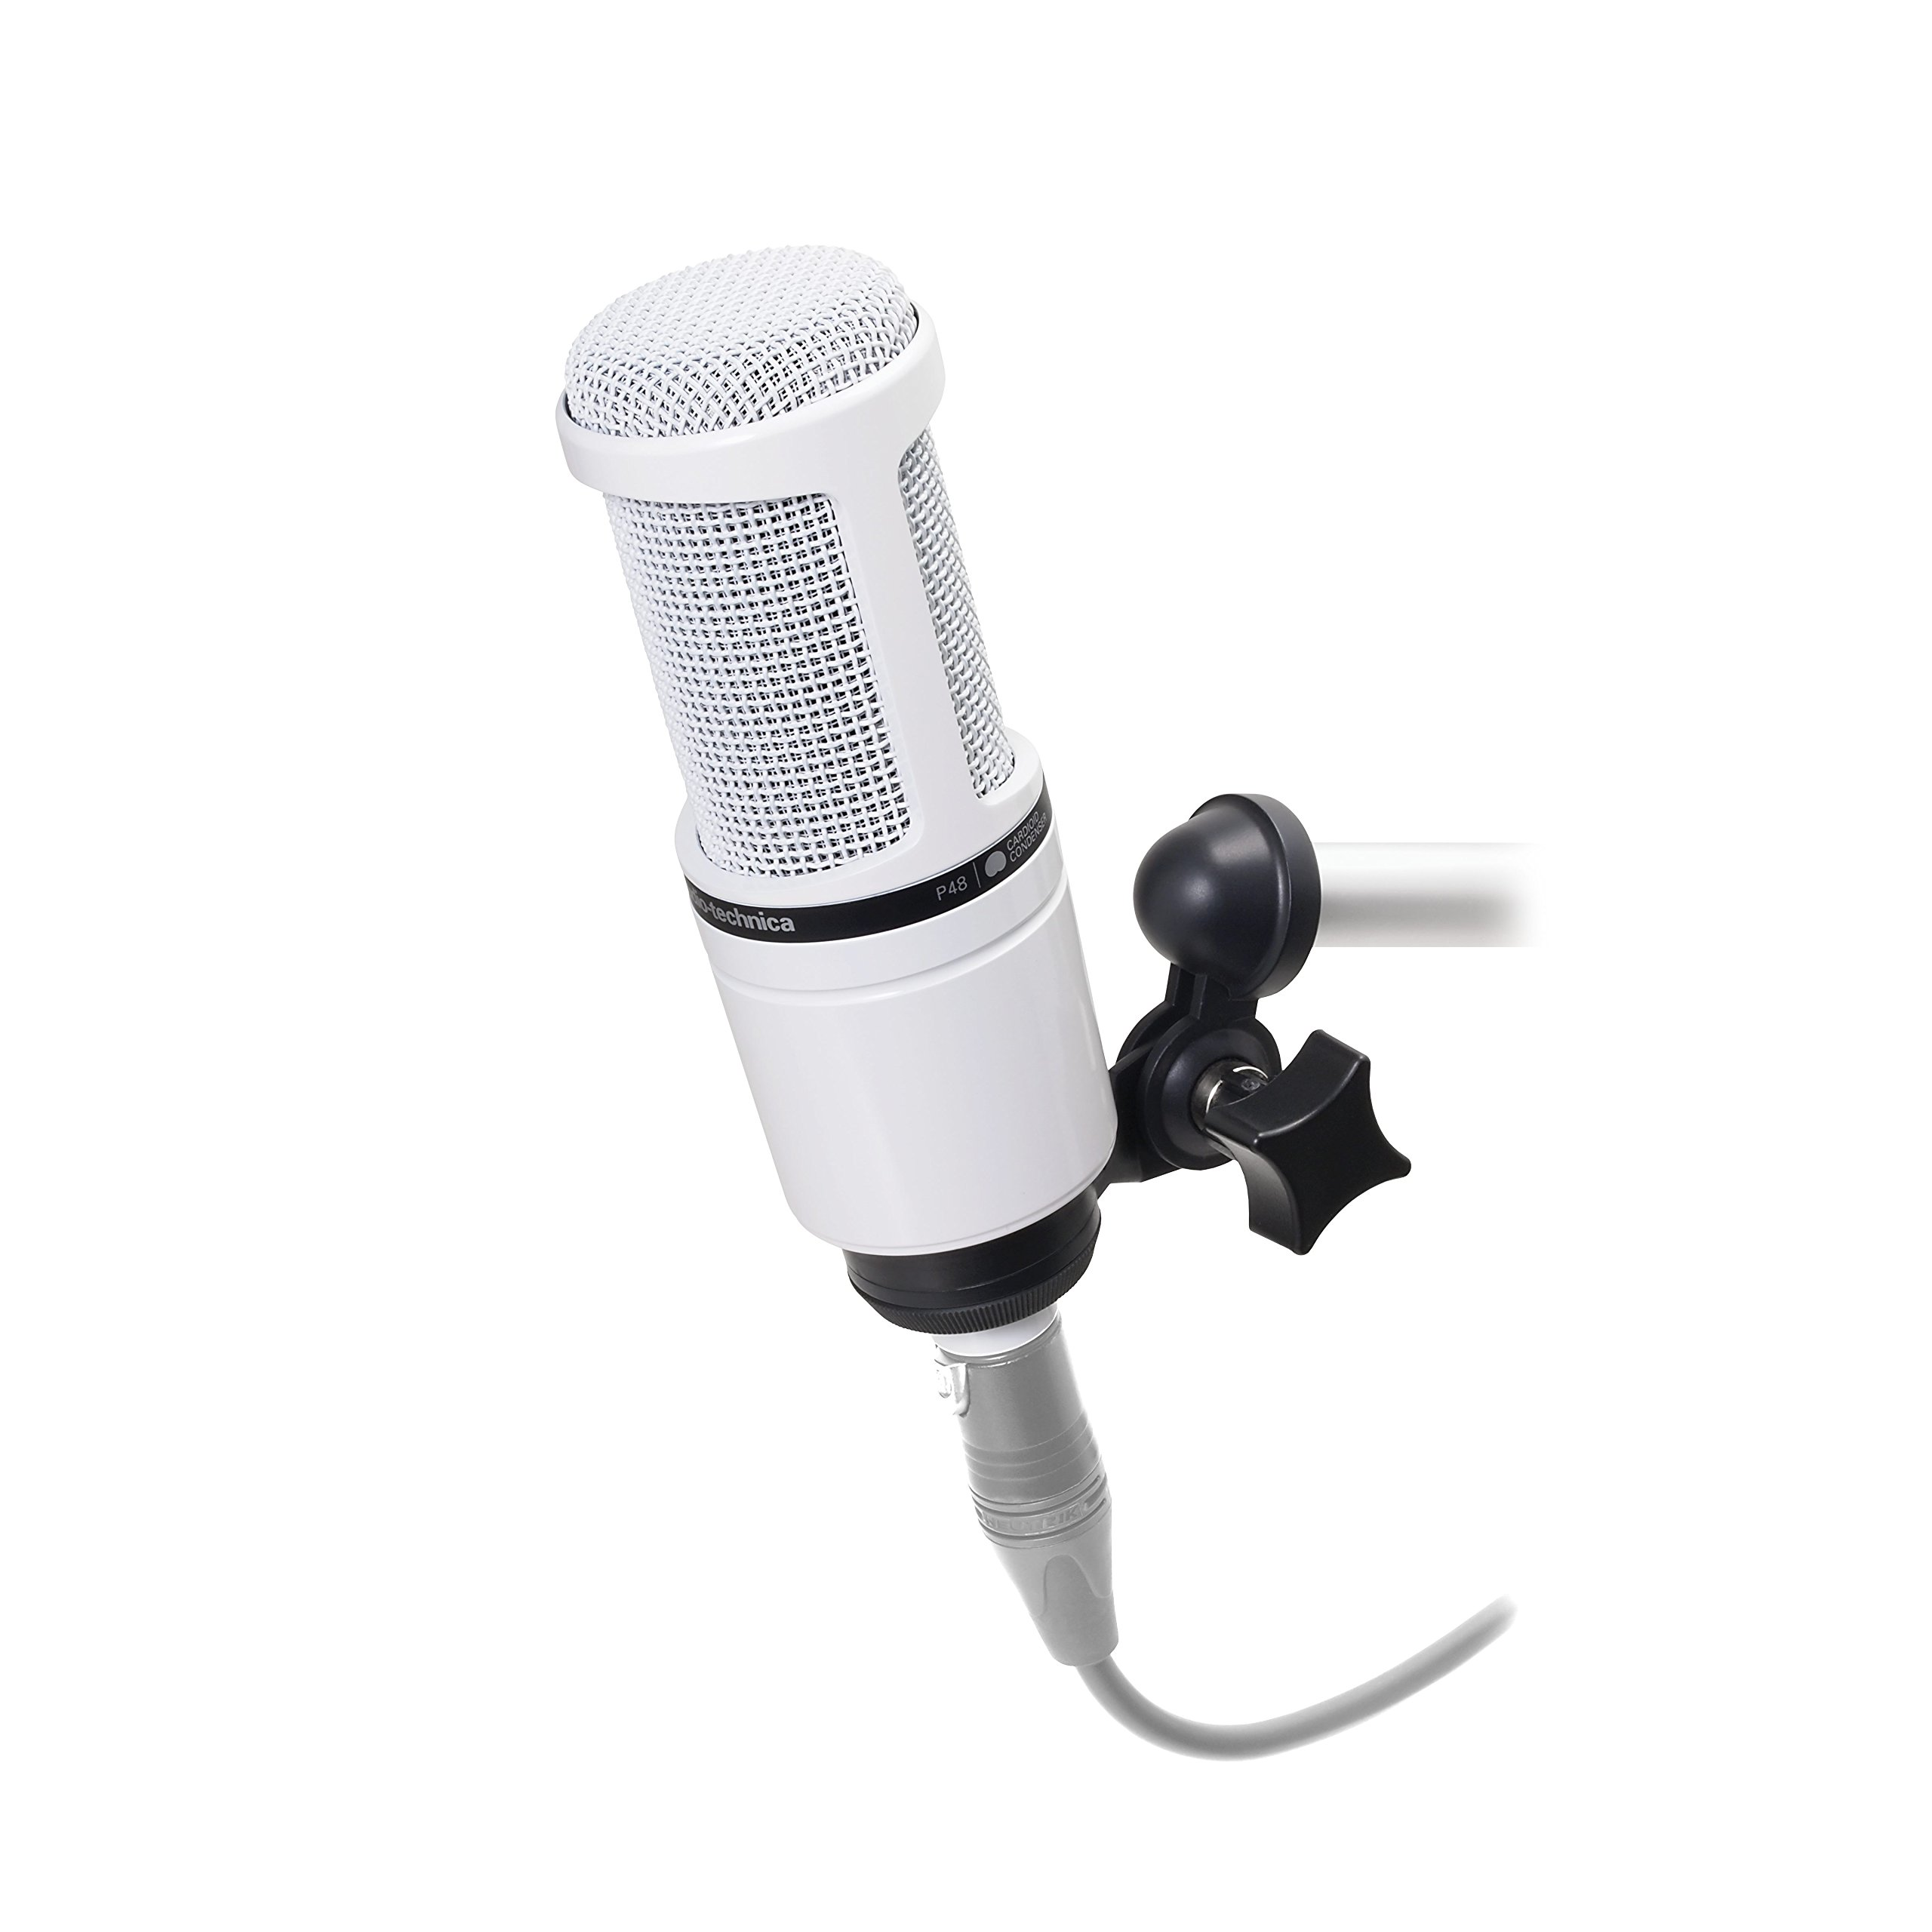 Audio-Technica AT2020 Cardioid Condenser Studio Microphone, White by Audio-Technica